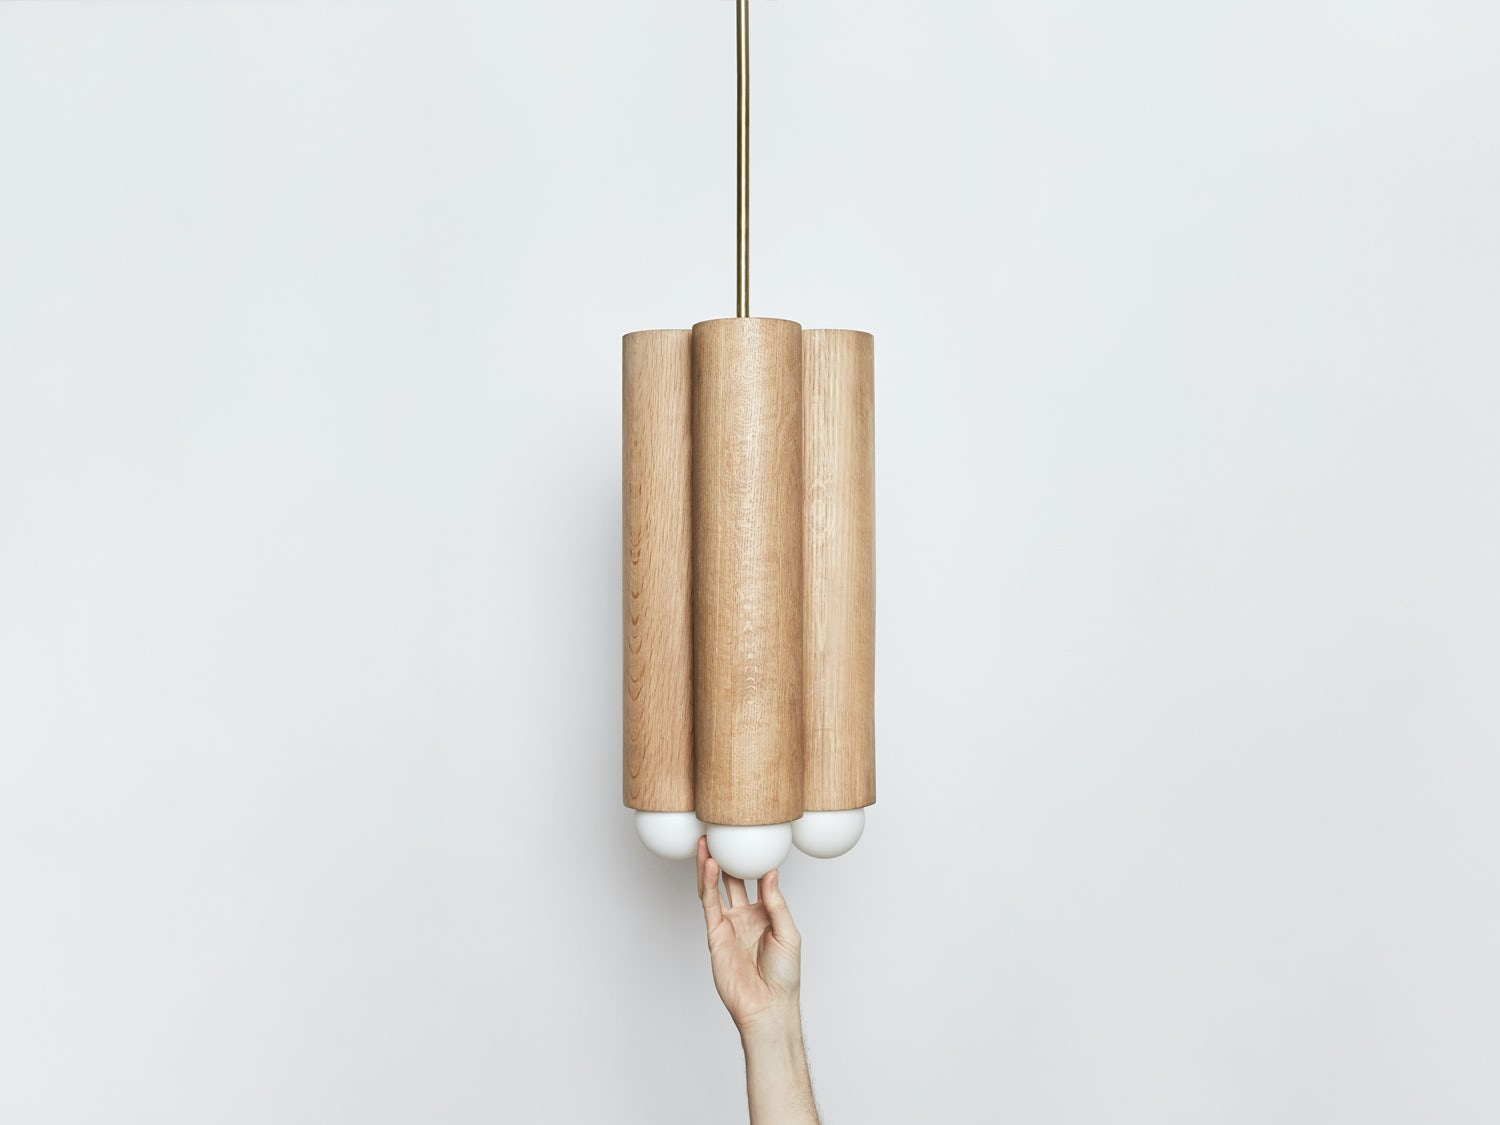 gallery image for Tower Pendant IV